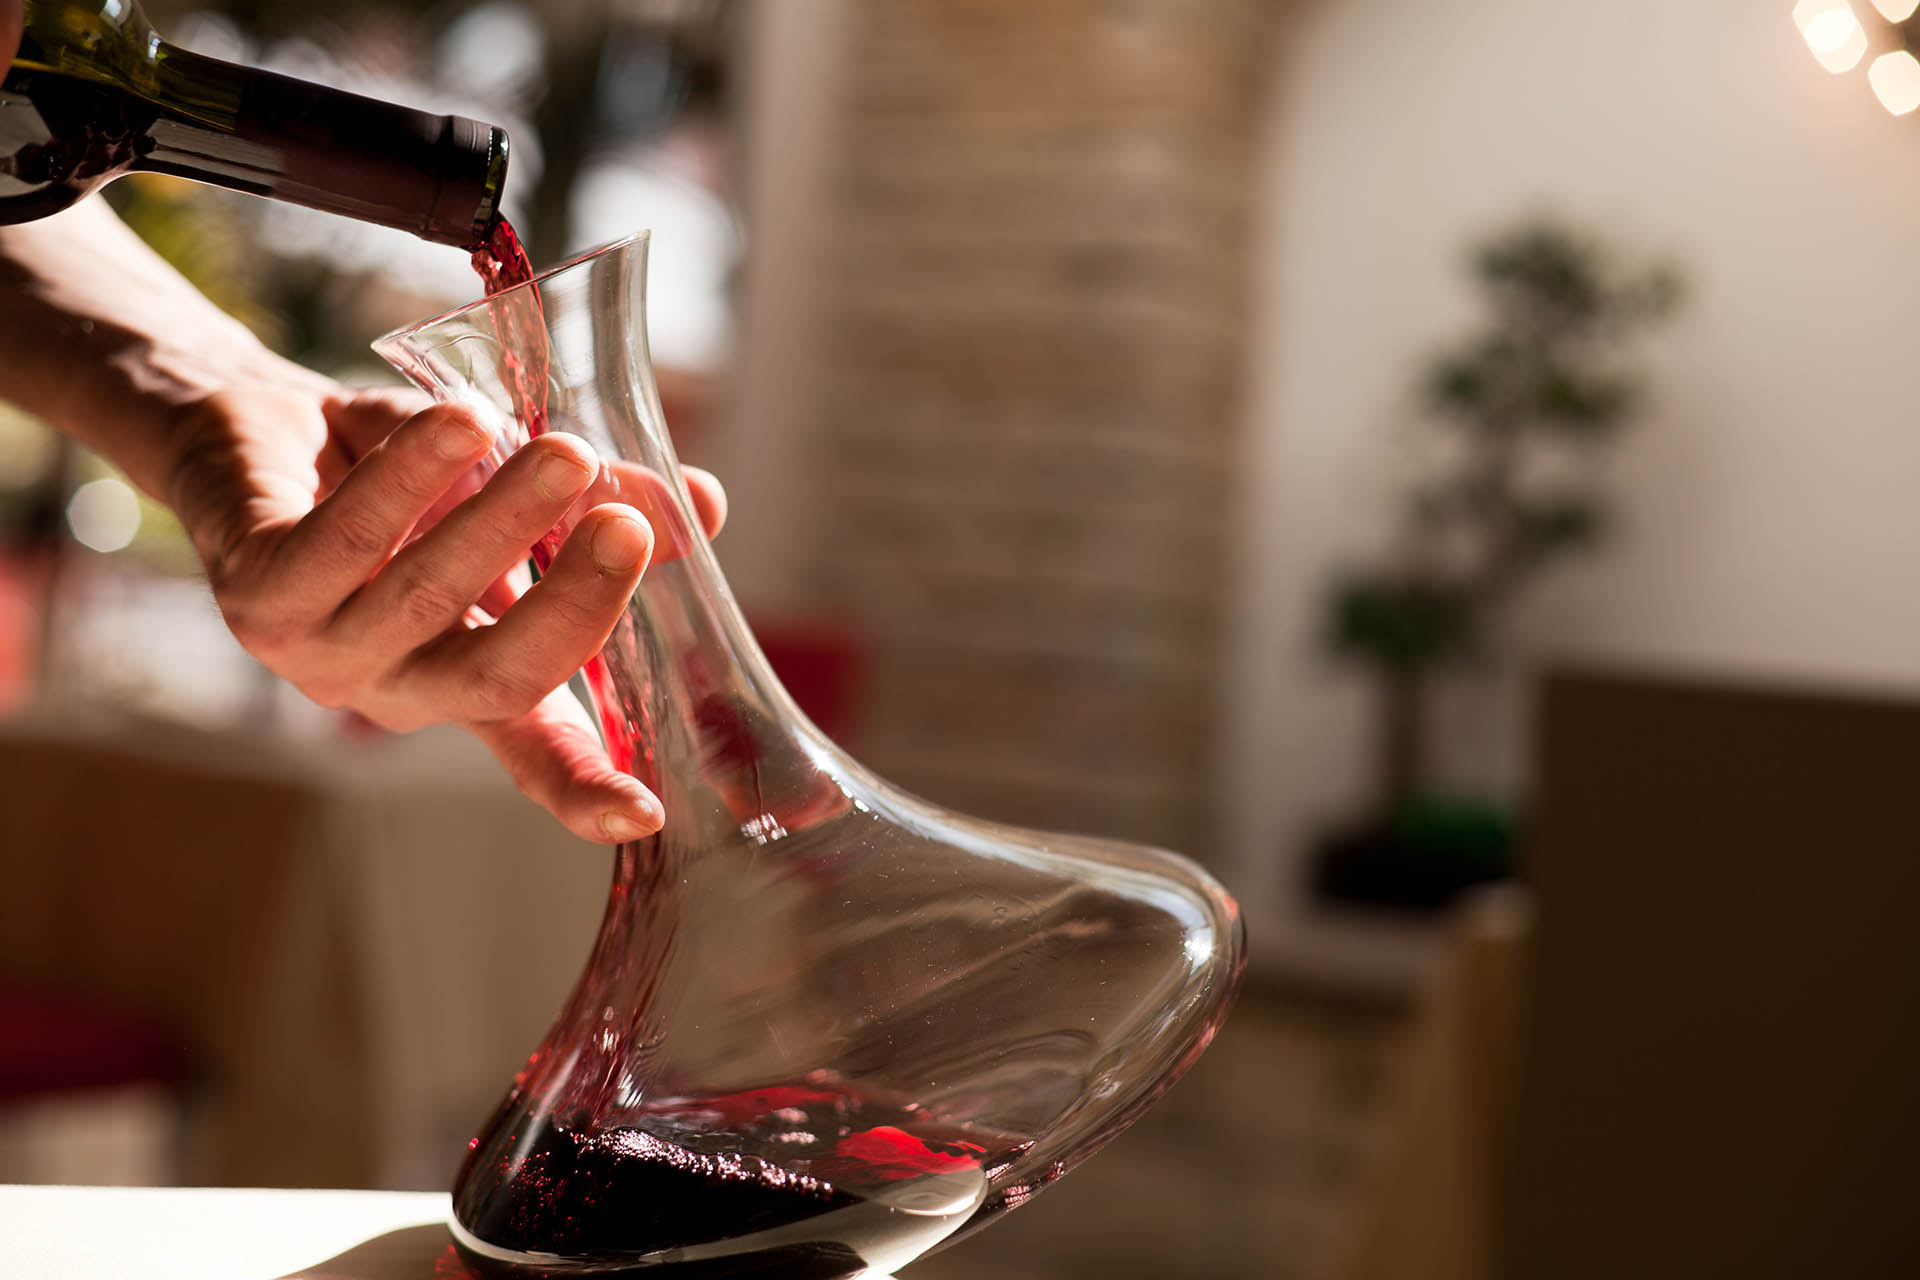 Red wine being poured into decanter